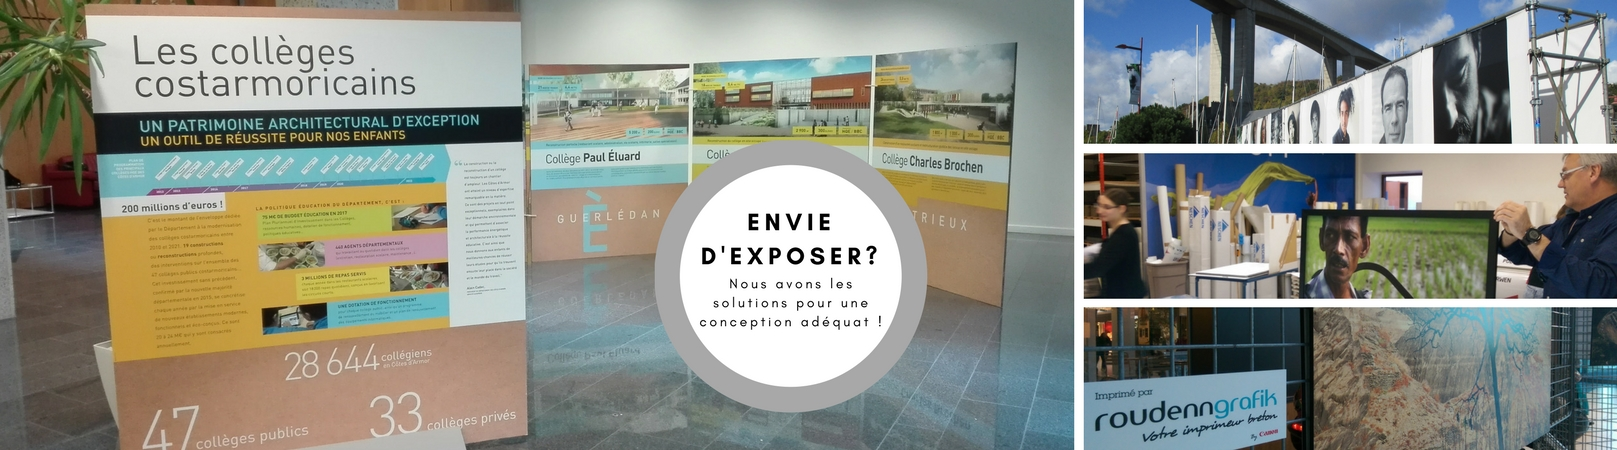 Envie d'exposer - Conception sur mesure - Roudenn Grafik